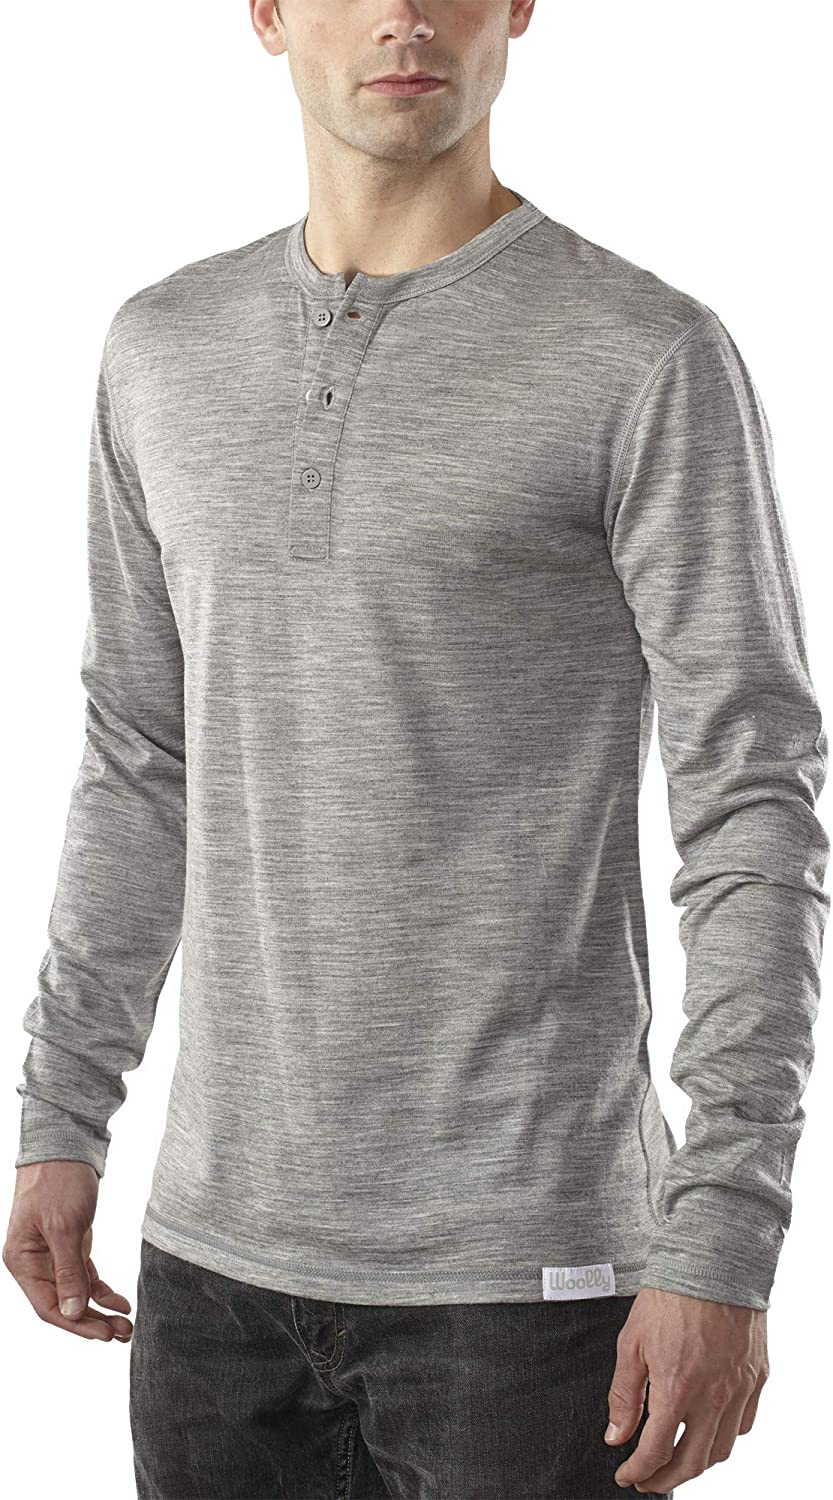 Woolly Clothing Max In a popularity 90% OFF Men's Merino Wool - Henley Everyday Long Sleeve